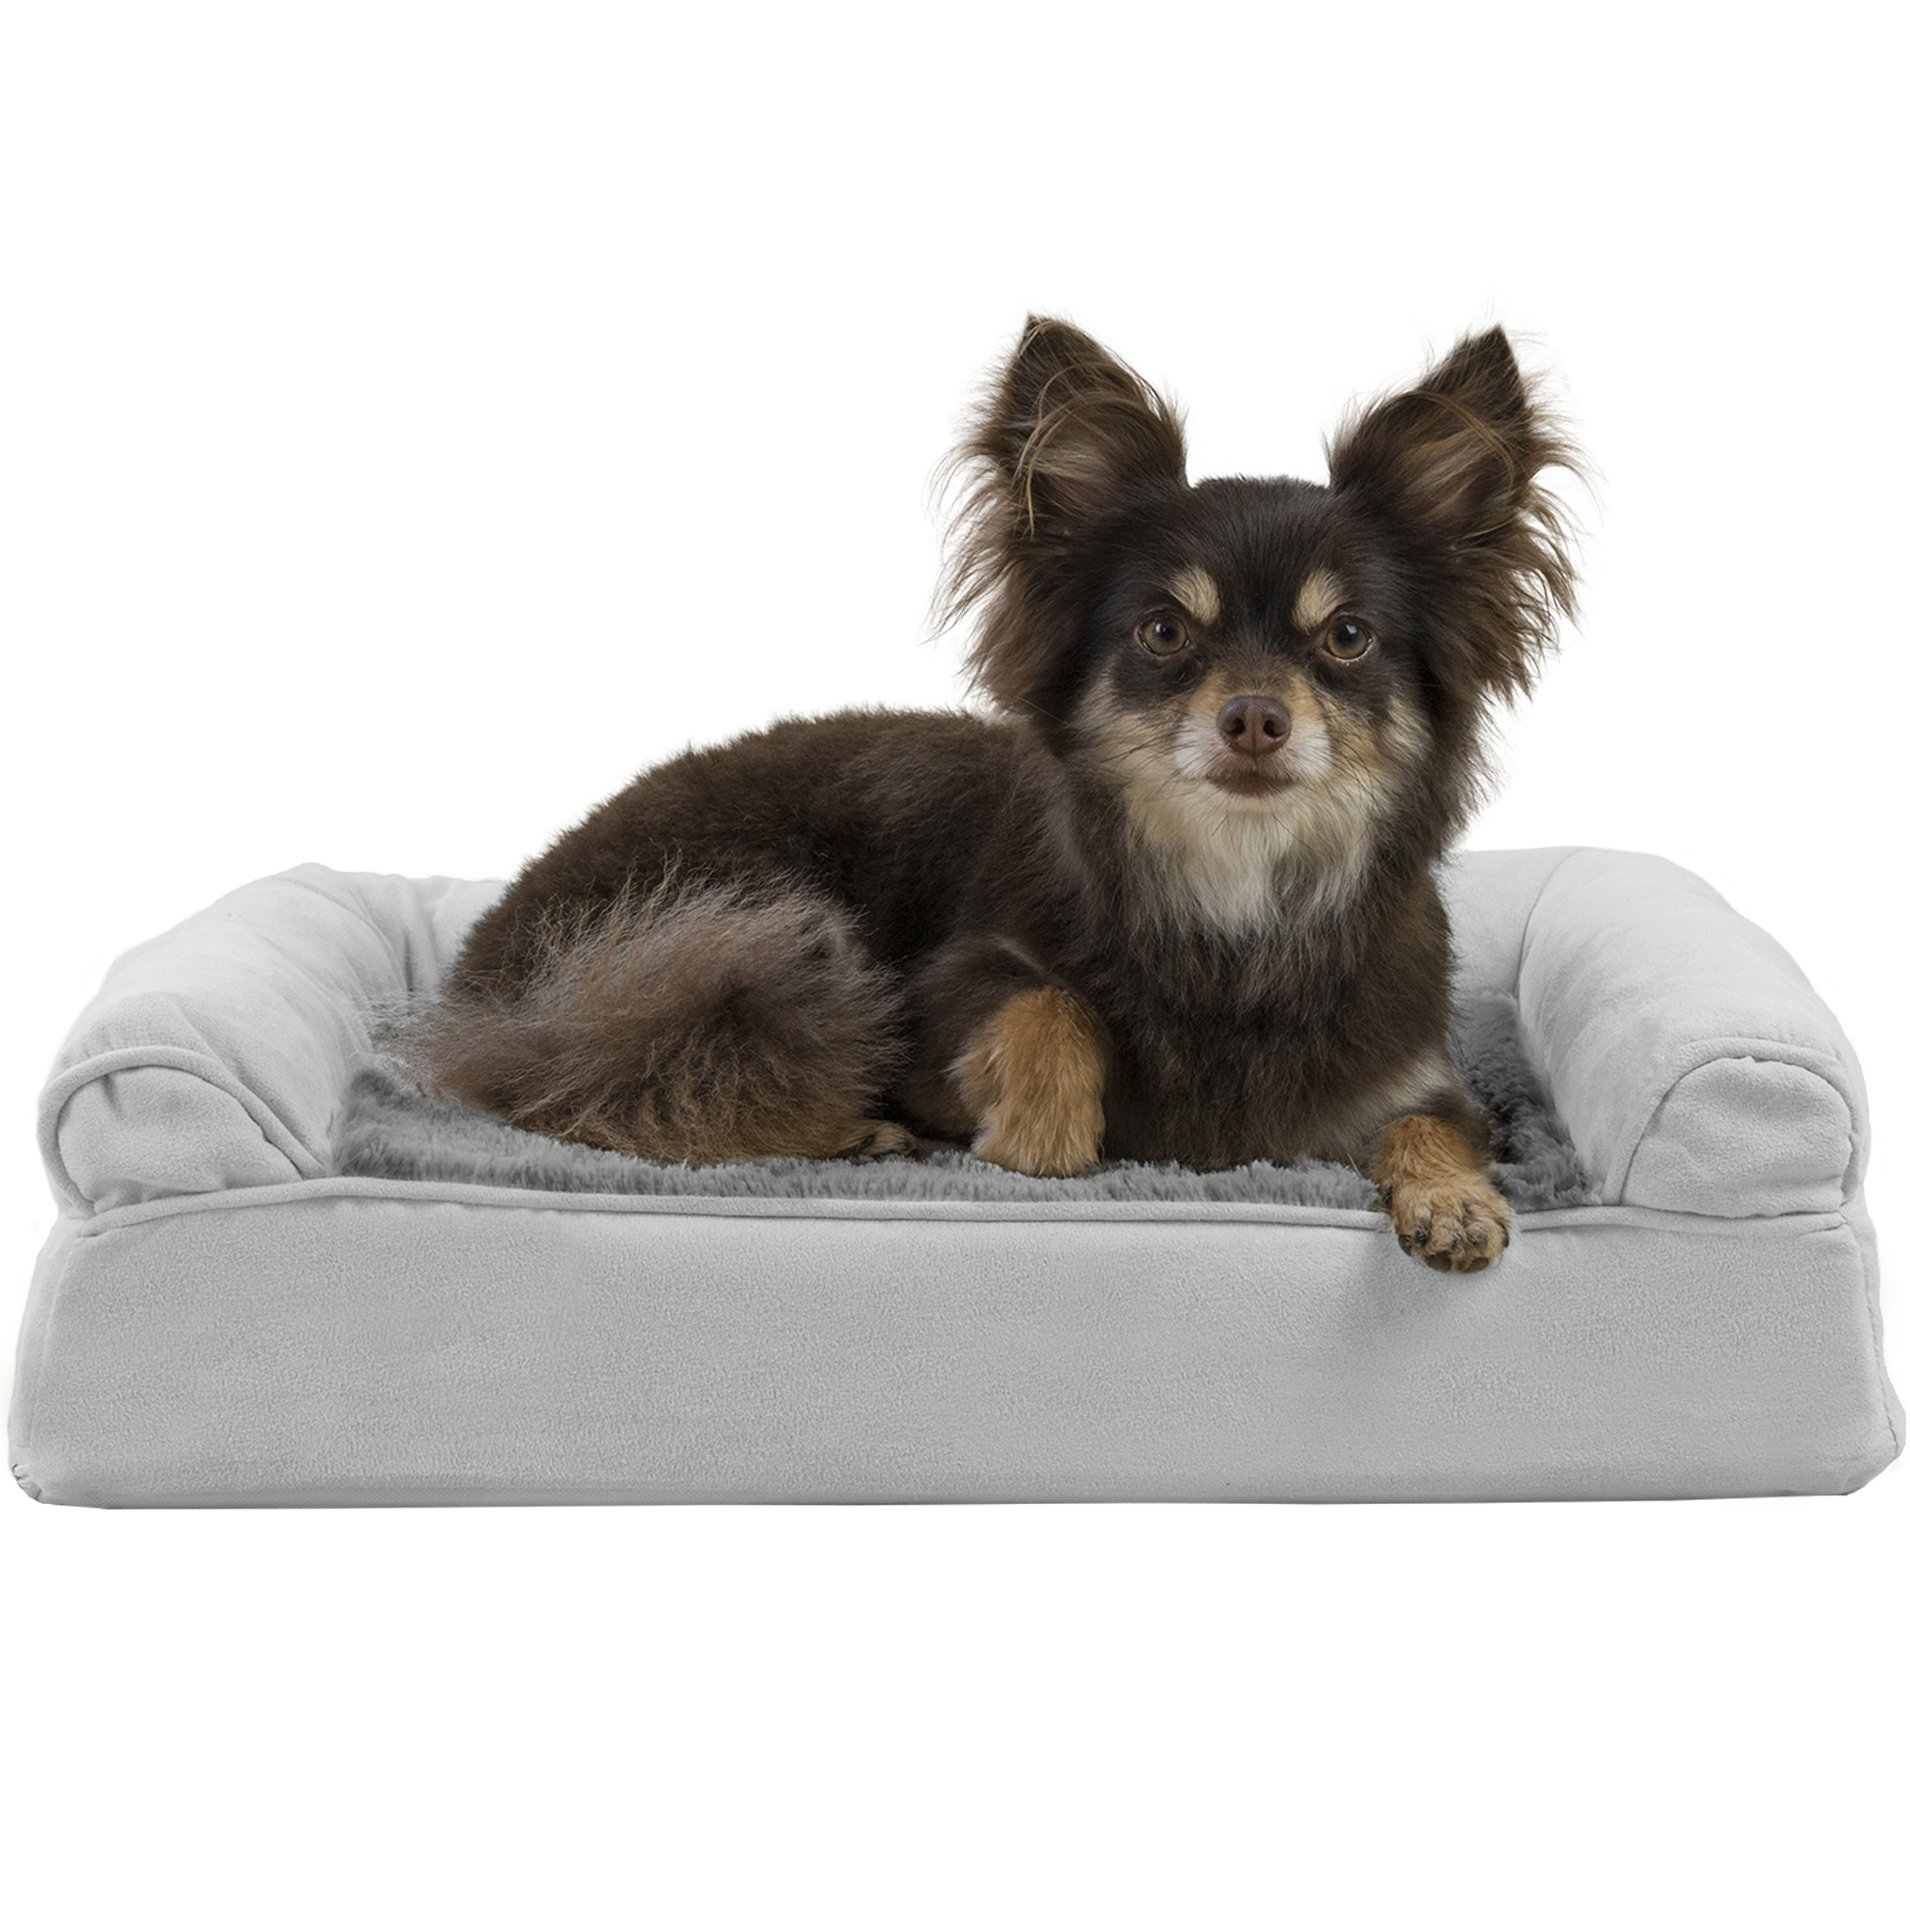 FurHaven Pet Dog Bed | Orthopedic Plush & Suede Sofa-Style Couch Pet Bed for Dogs & Cats, Gray, Small